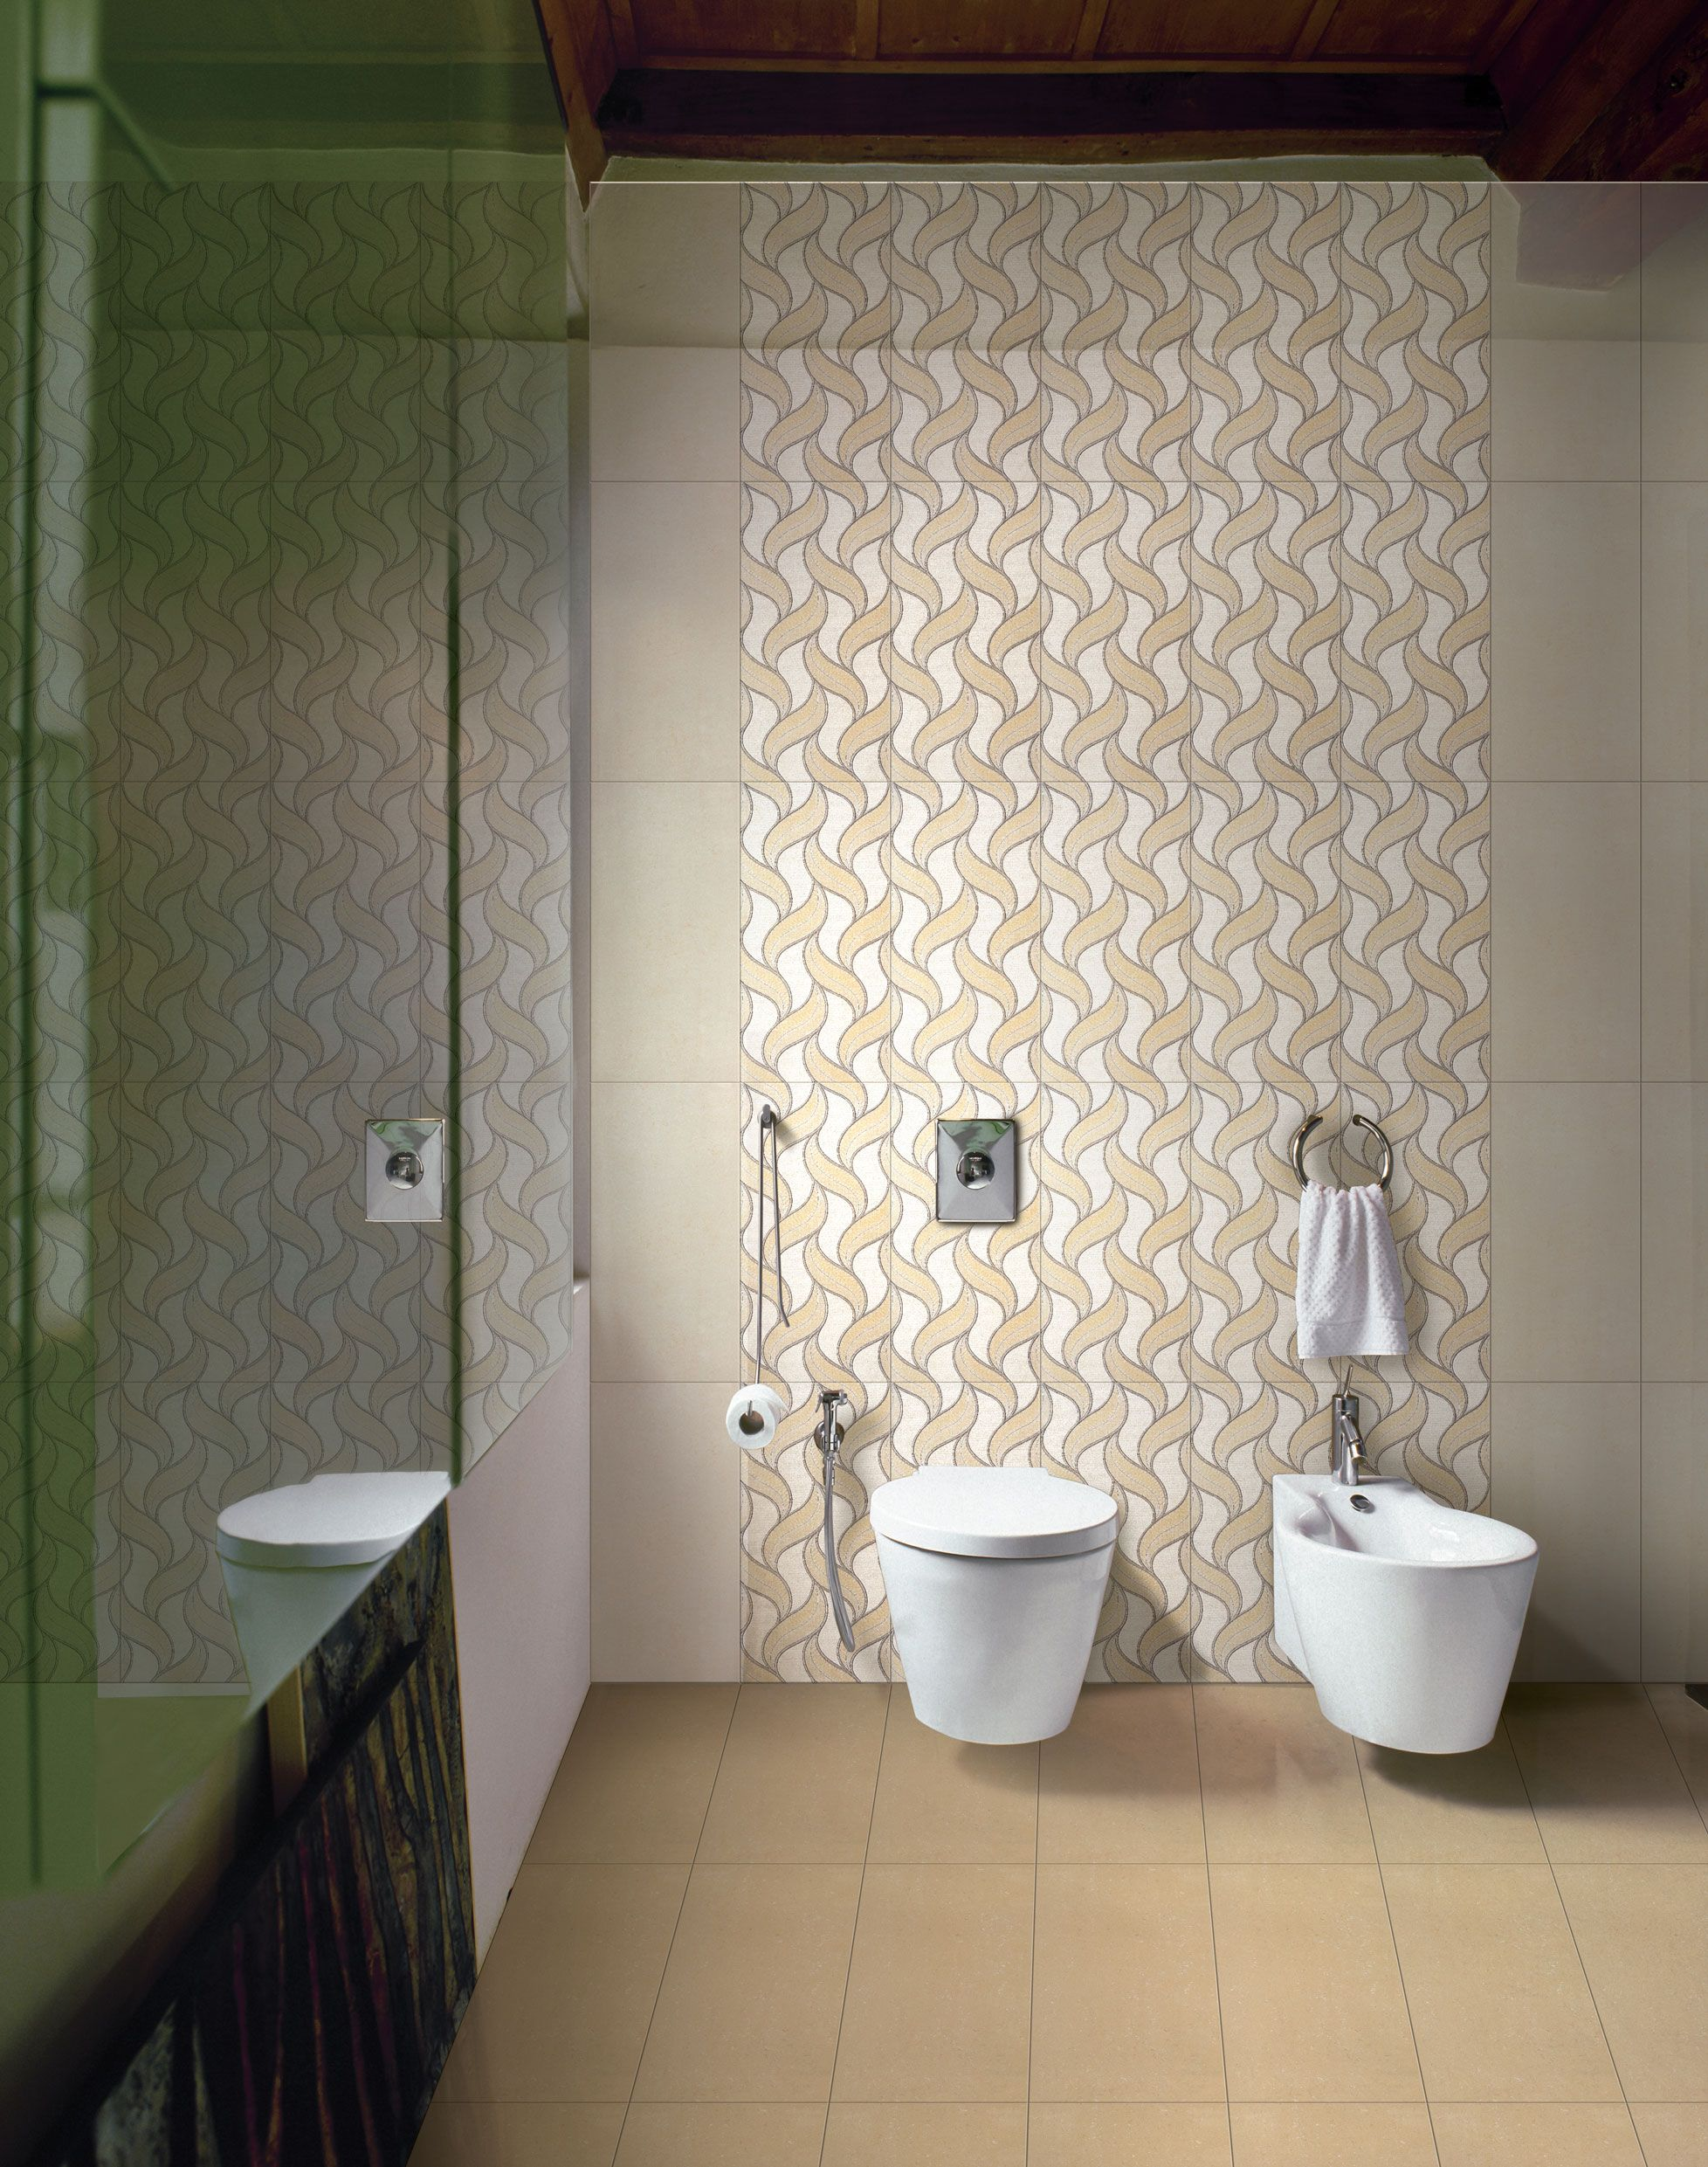 Buy designer floor wall tiles for bathroom bedroom kitchen living room office vitrified Bathroom design companies in india